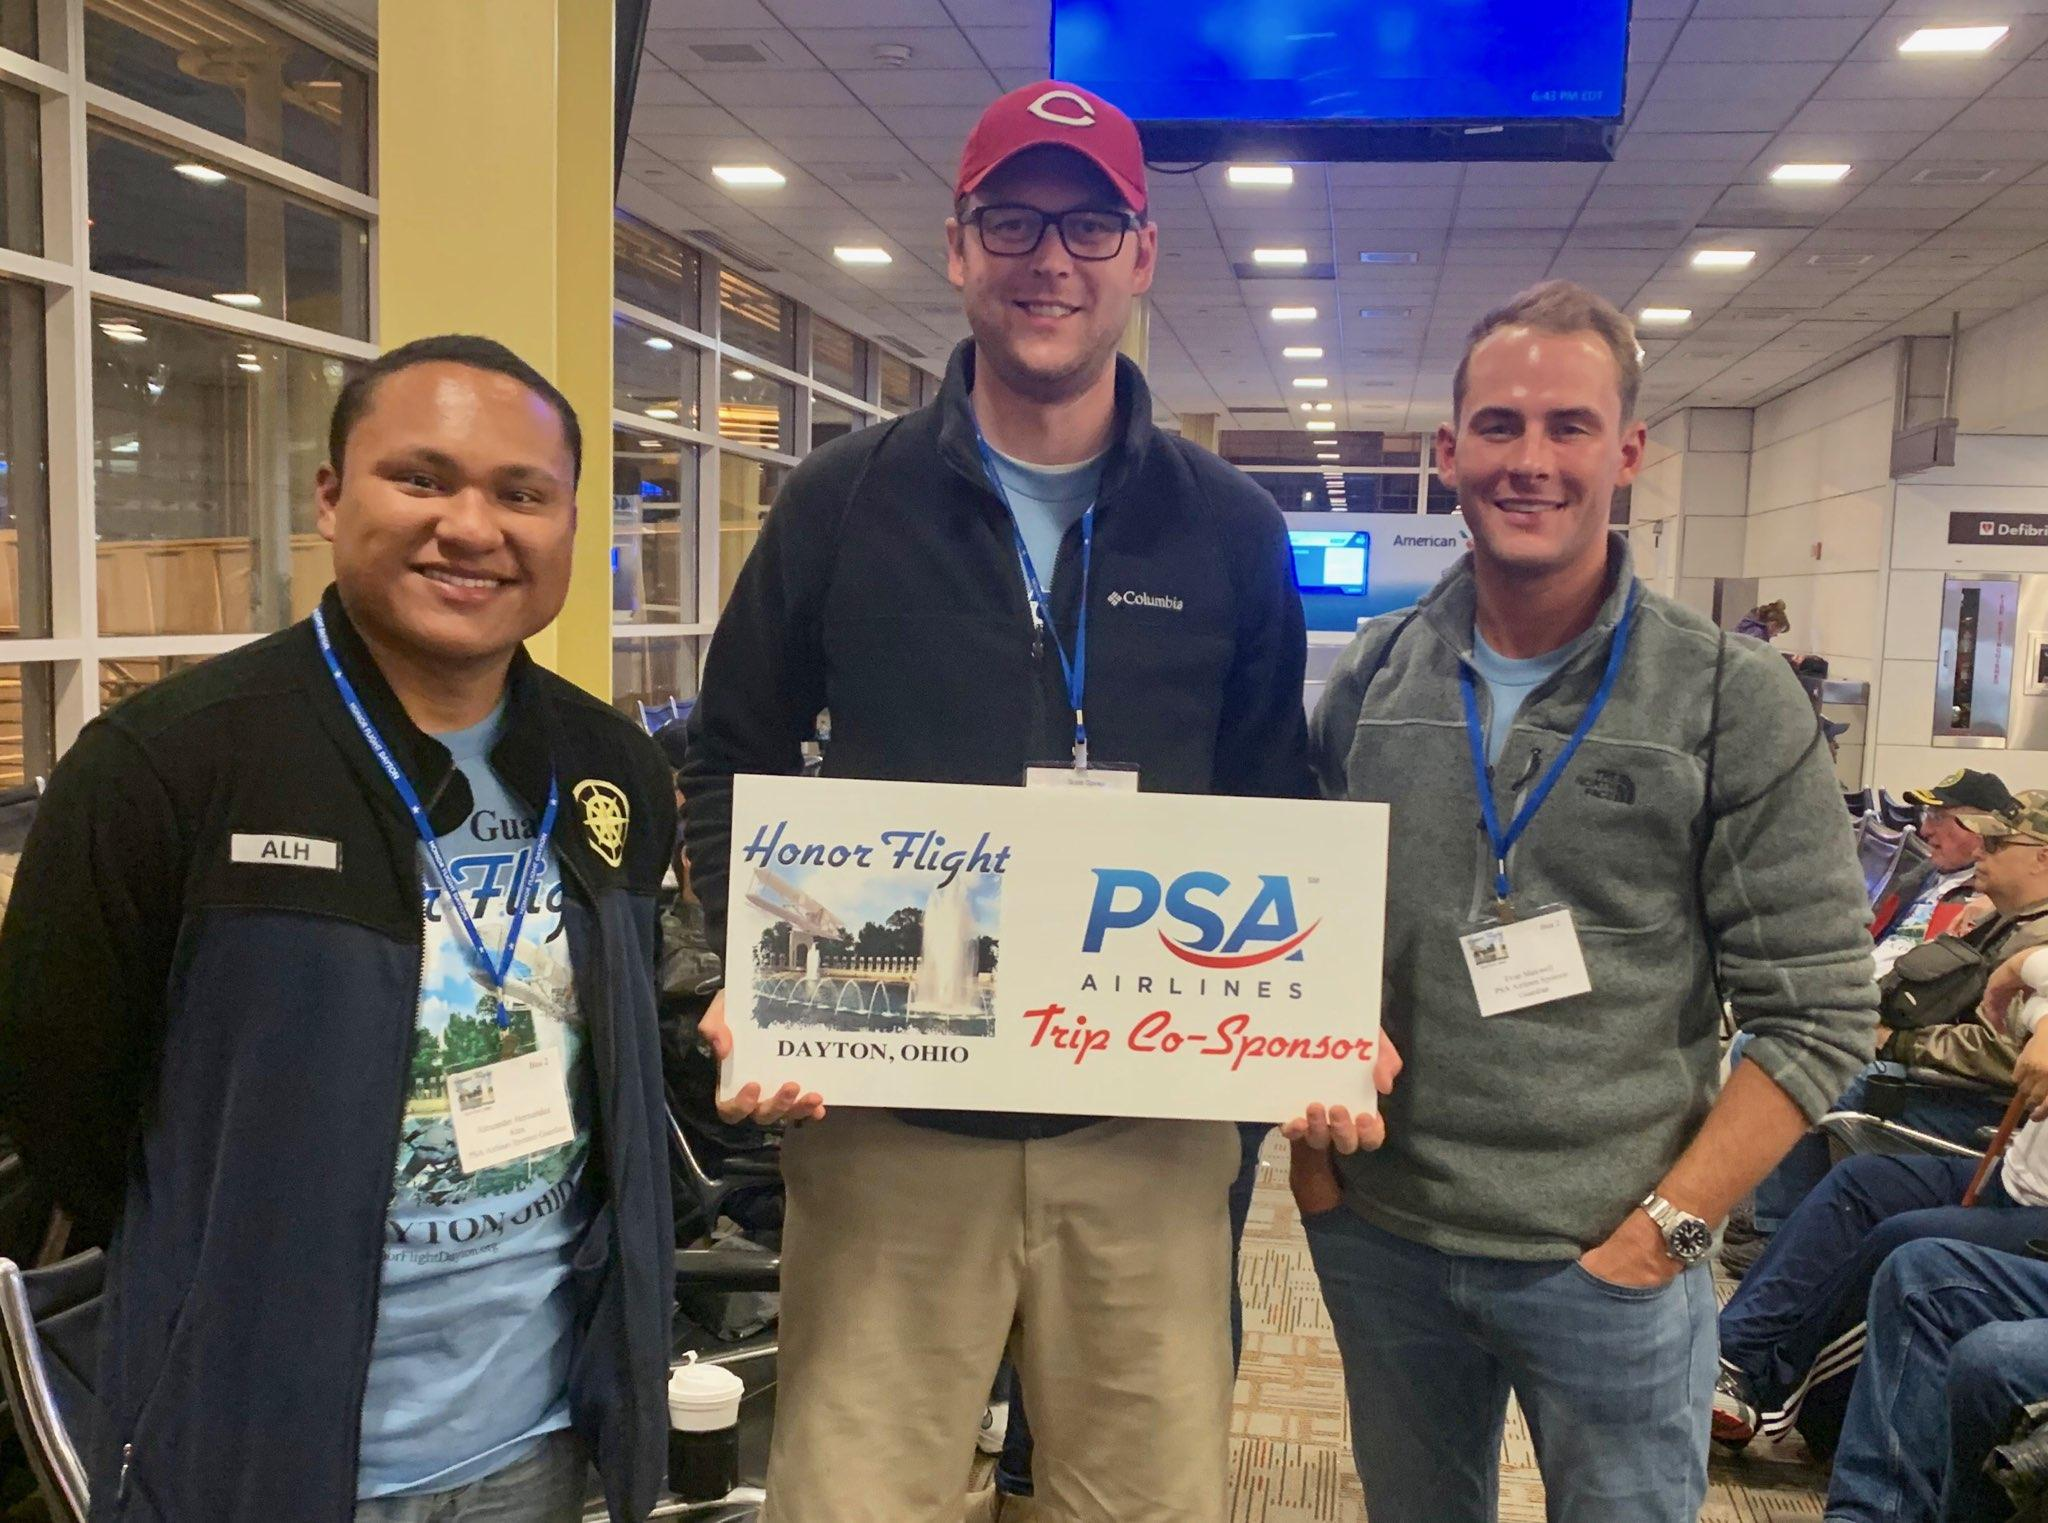 PSA Team Members Assisting at Honor Flight Dayton - (Left to Right: FA Alexander Hernandez, CA Scott Spires, CA Evan Maxwell)